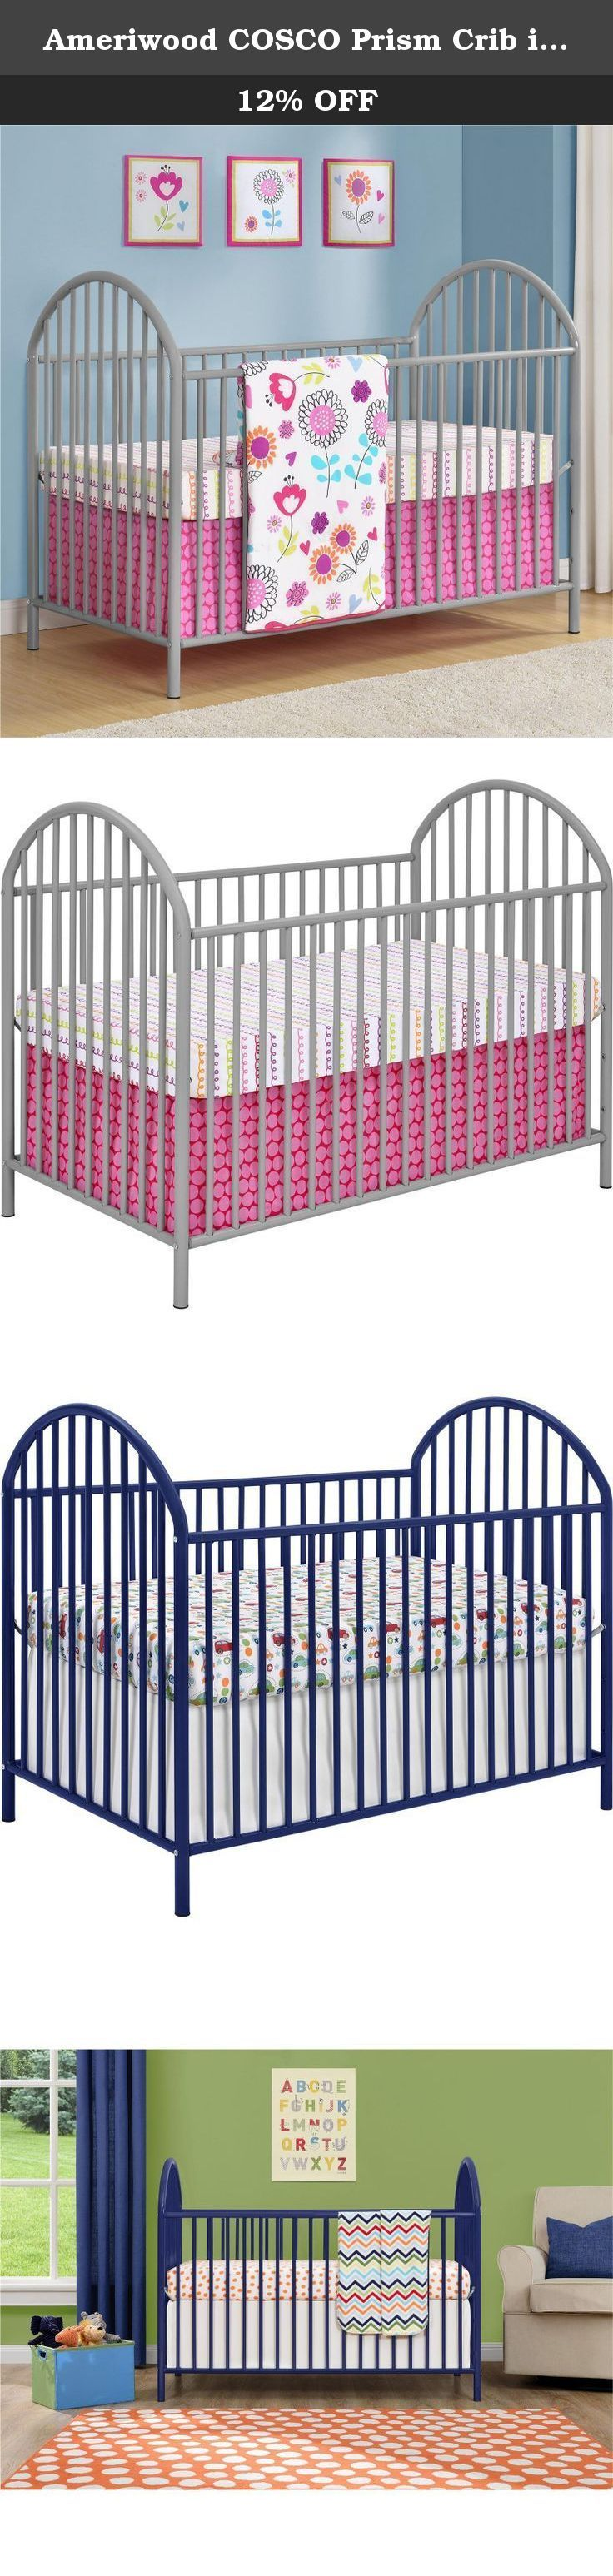 Ameriwood COSCO Prism Crib in Navy Blue. Curved edges help the contemporary Cosco Prism Metal Crib stand out from the crowd, and that unique touch isn't the only reason you'll want to add this crib to your nursery. You can sleep soundly knowing your baby's crib uses only nontoxic finishes and has been tested for lead and other exotic elements. It meets or exceeds both U.S. government and ASTM safety standards, and three mattress height options let this piece grow with baby. Assembly...